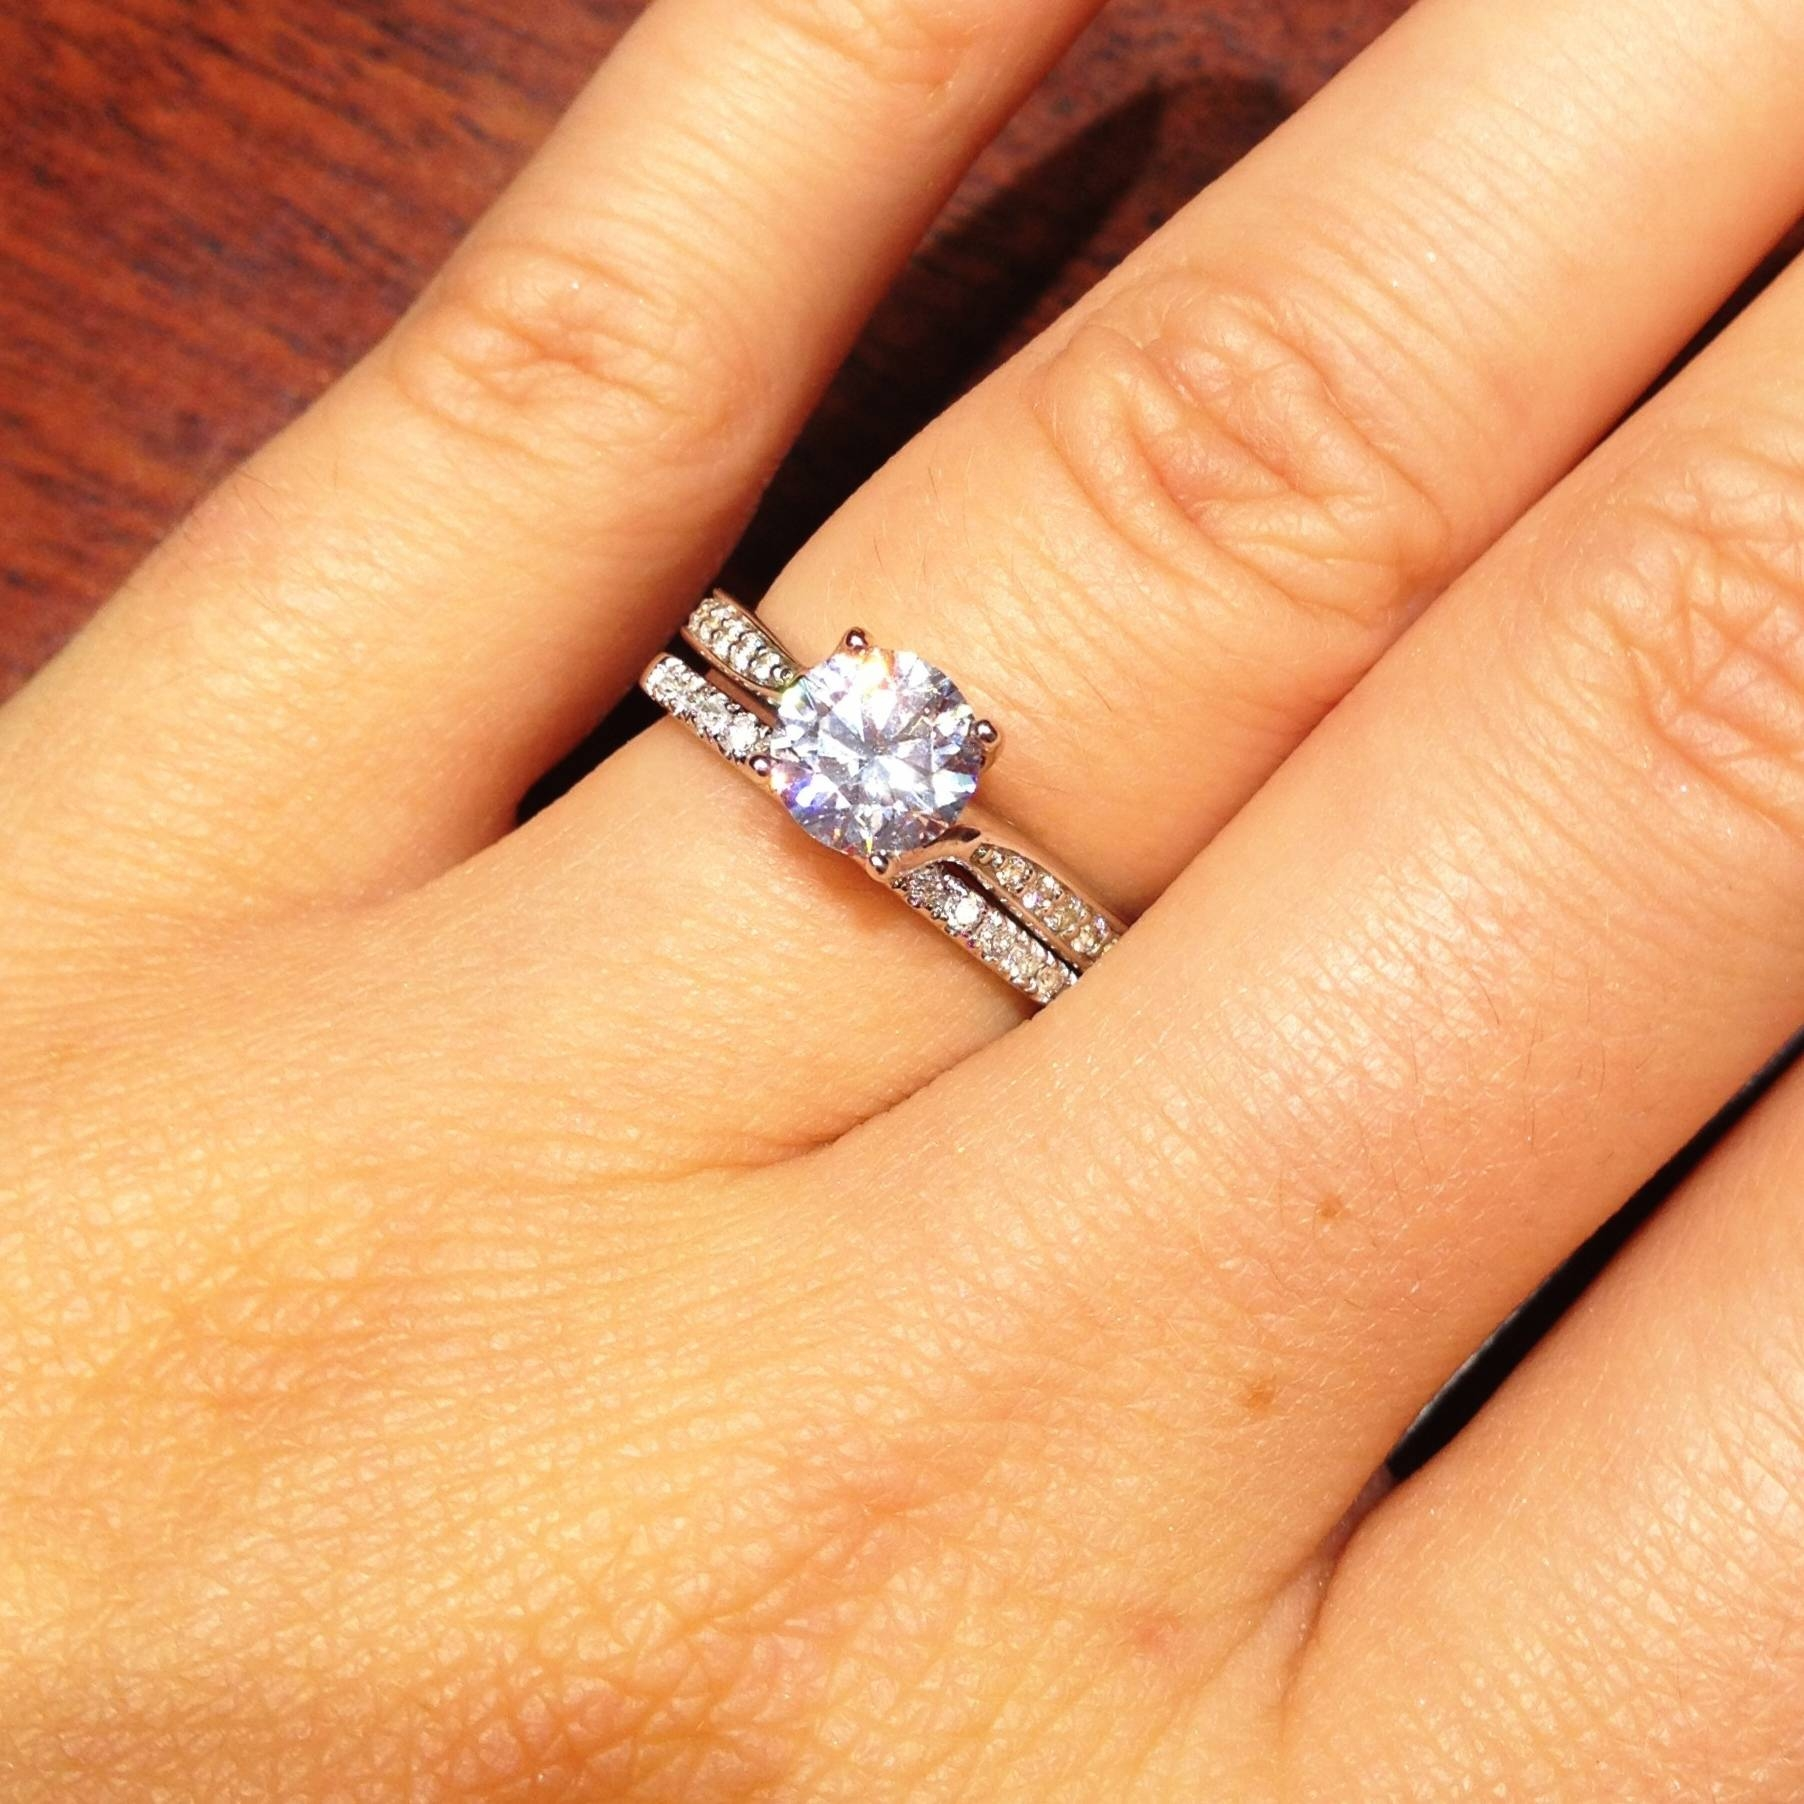 Wedding Rings : Wedding Bands For Halo Engagement Rings Solitaire Inside Engagement Rings With Bands (View 13 of 15)